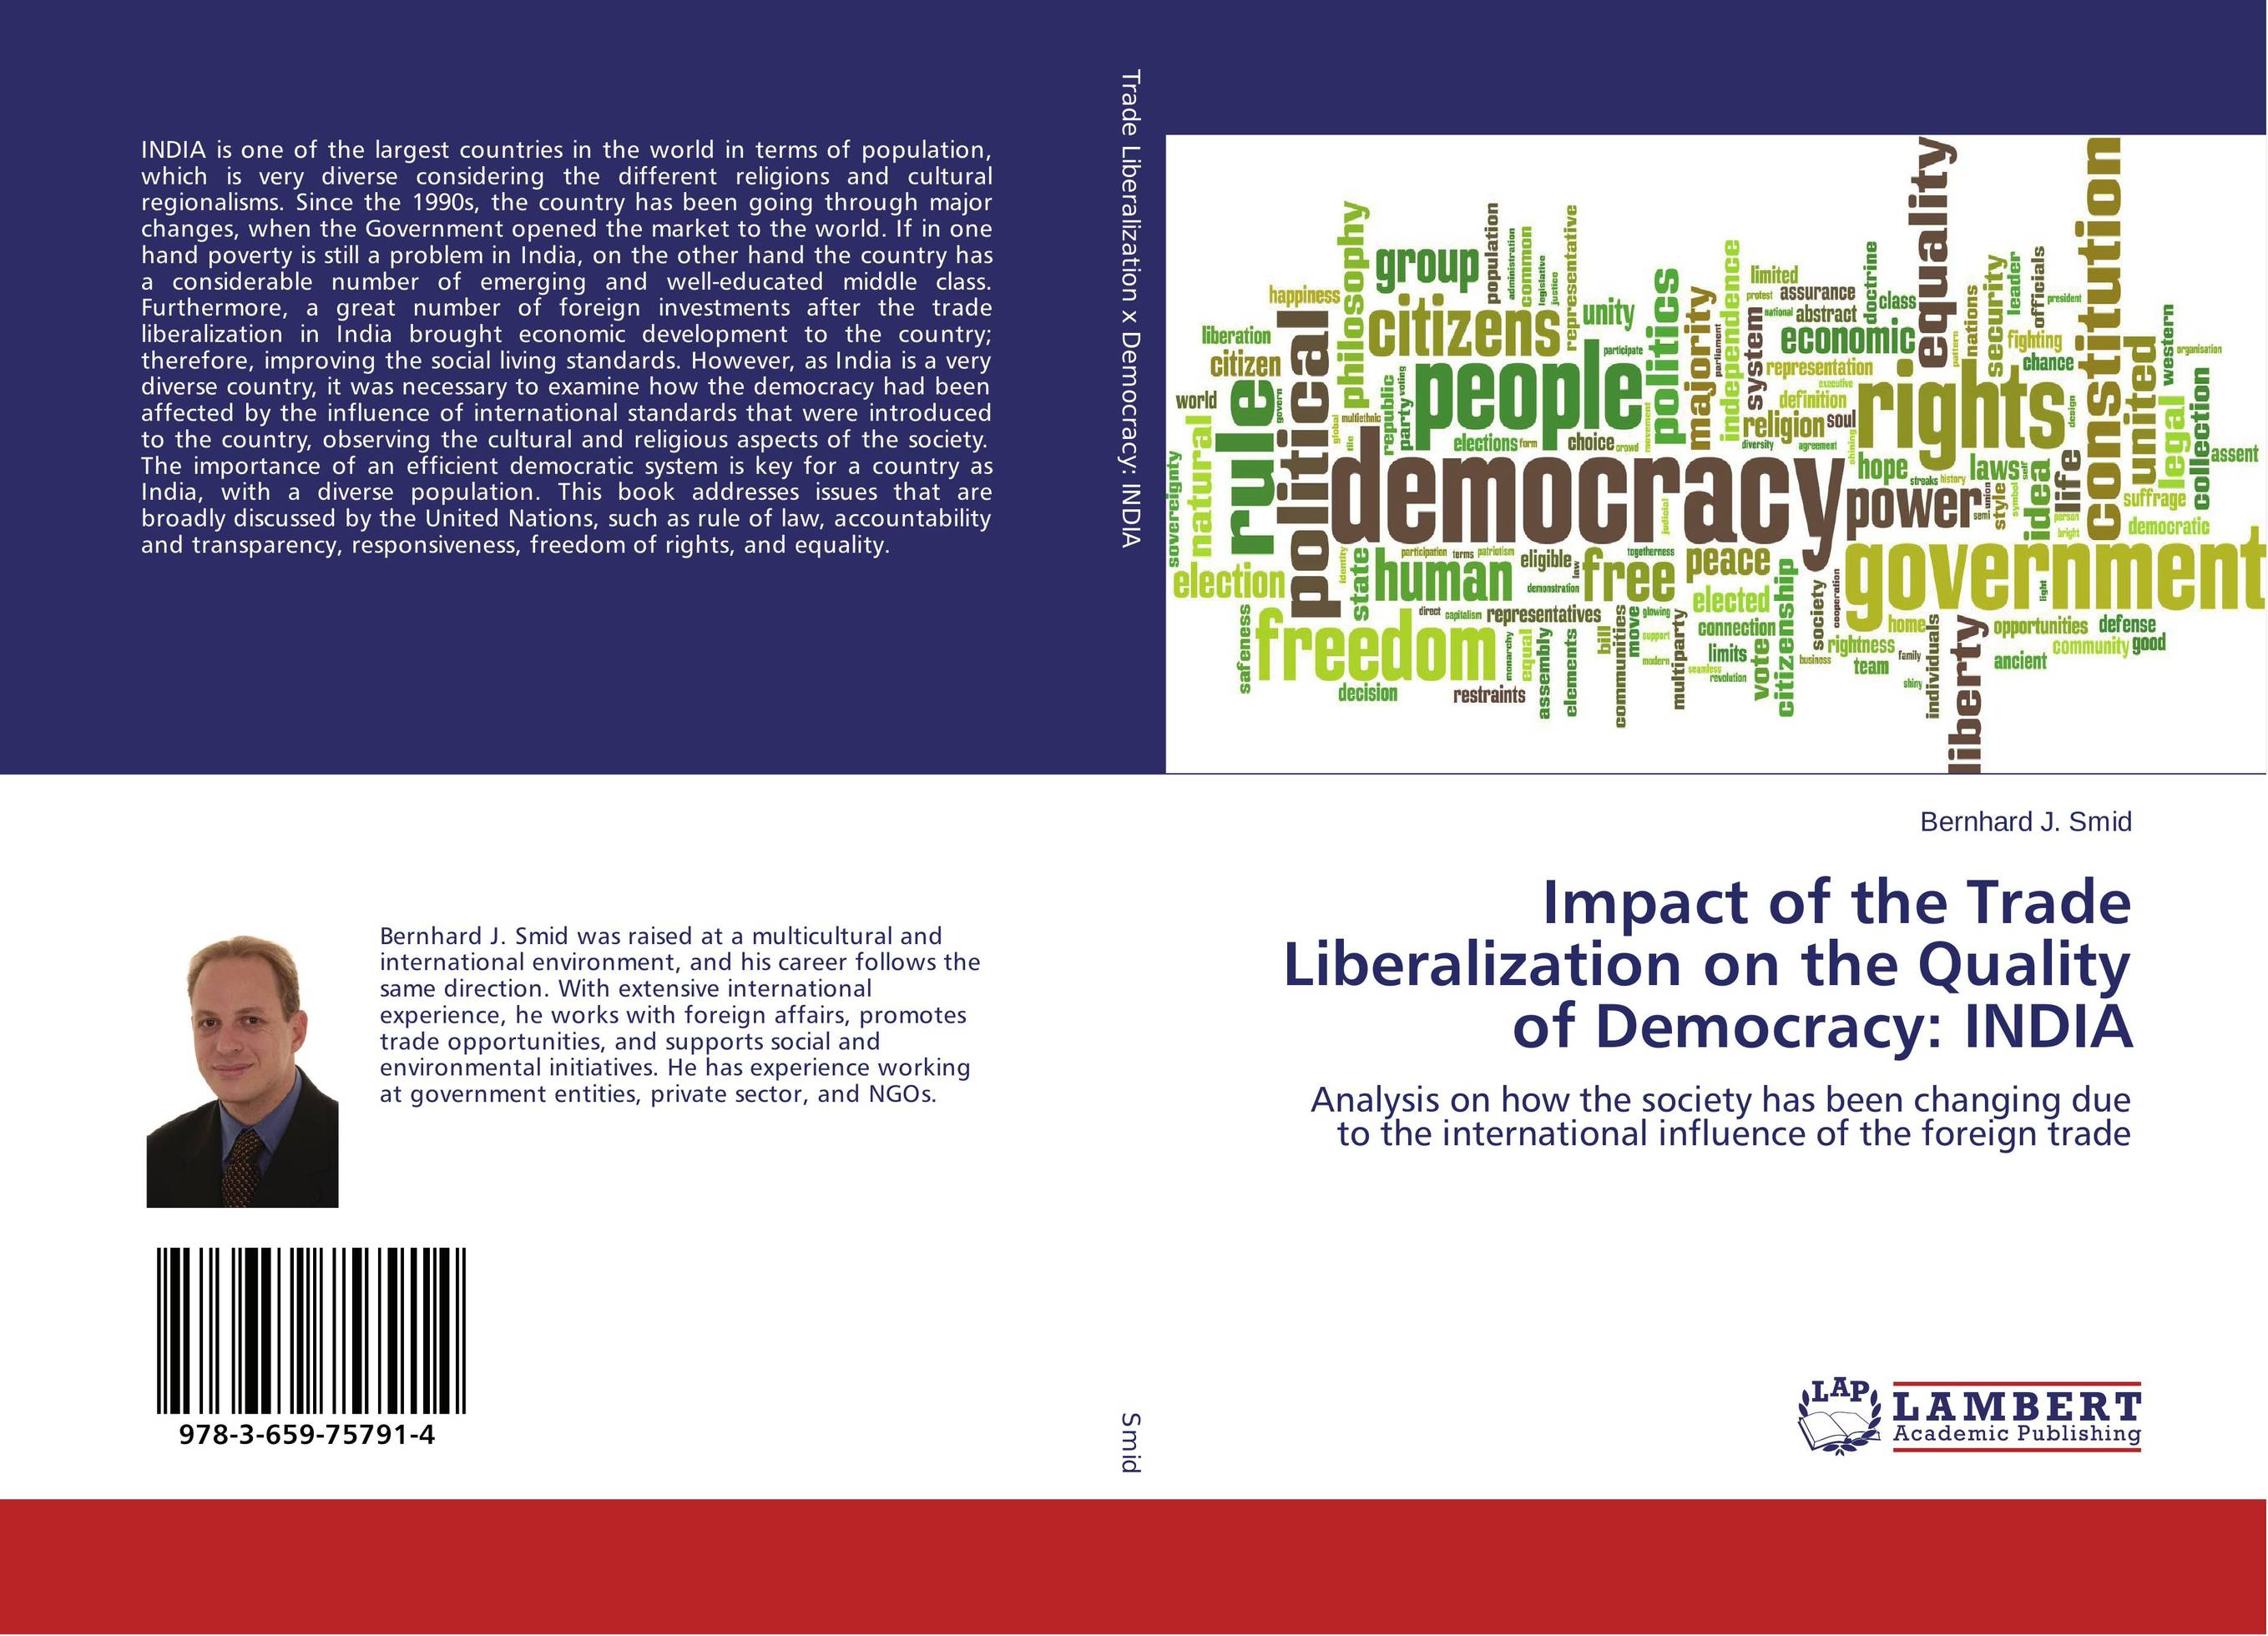 Impact of the Trade Liberalization on the Quality of Democracy: INDIA martha yilma and sindu workhen kebede impact of trade liberalization on ethiopian agriculture vs industry